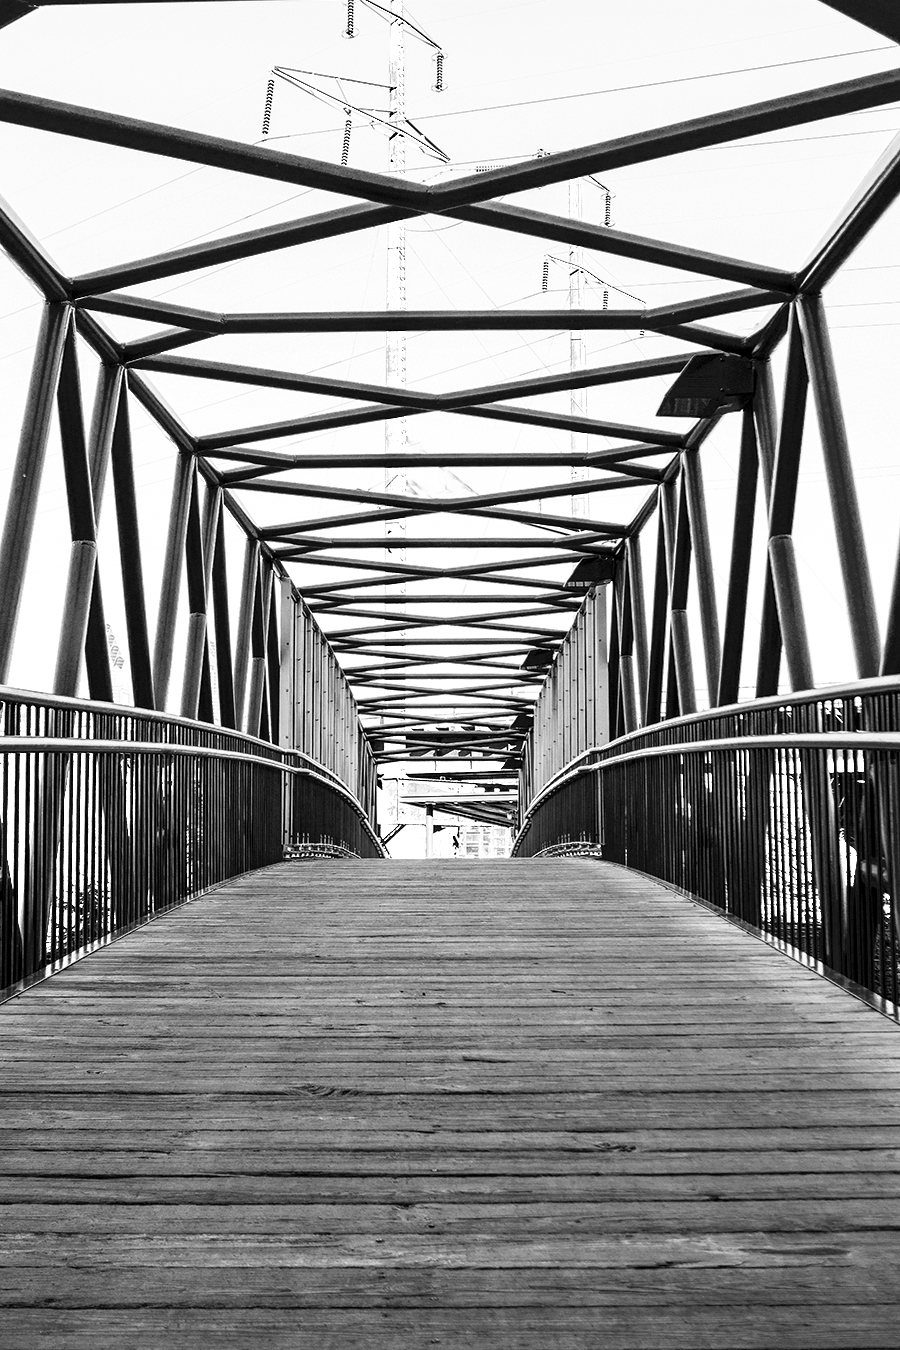 Janelle_Tong_Photography_Tony_Ward_Studio_Individual_Project_UPenn_Penn_Park_Bridges_Perspective_No_Shadows_Black_and_White